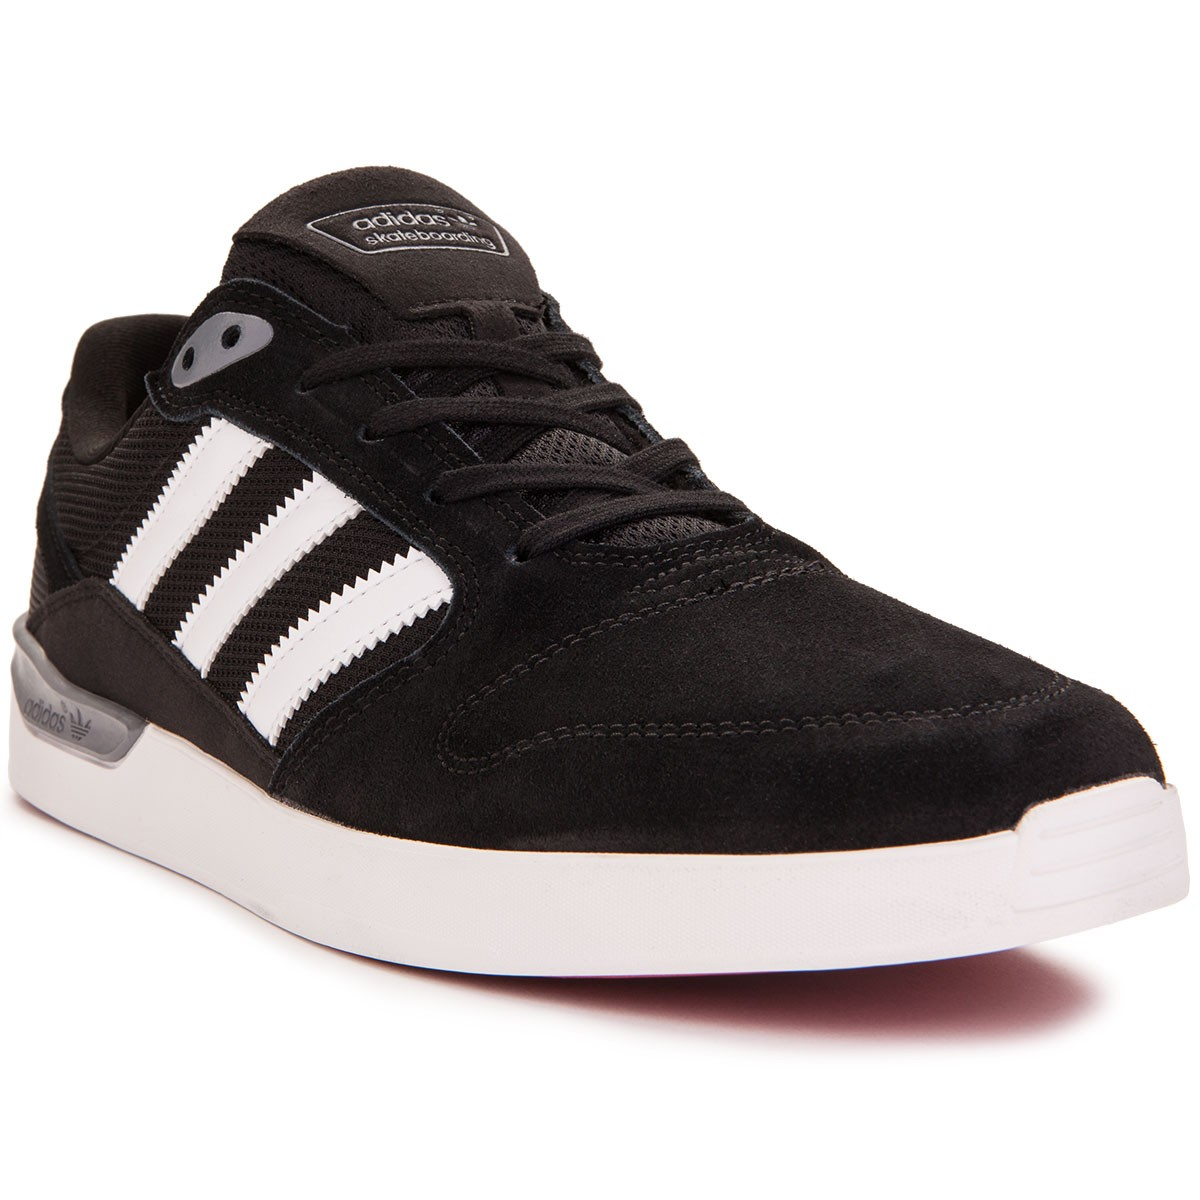 Adidas Shoes Black And White Gt Gt Boys Adidas High Top Shoes